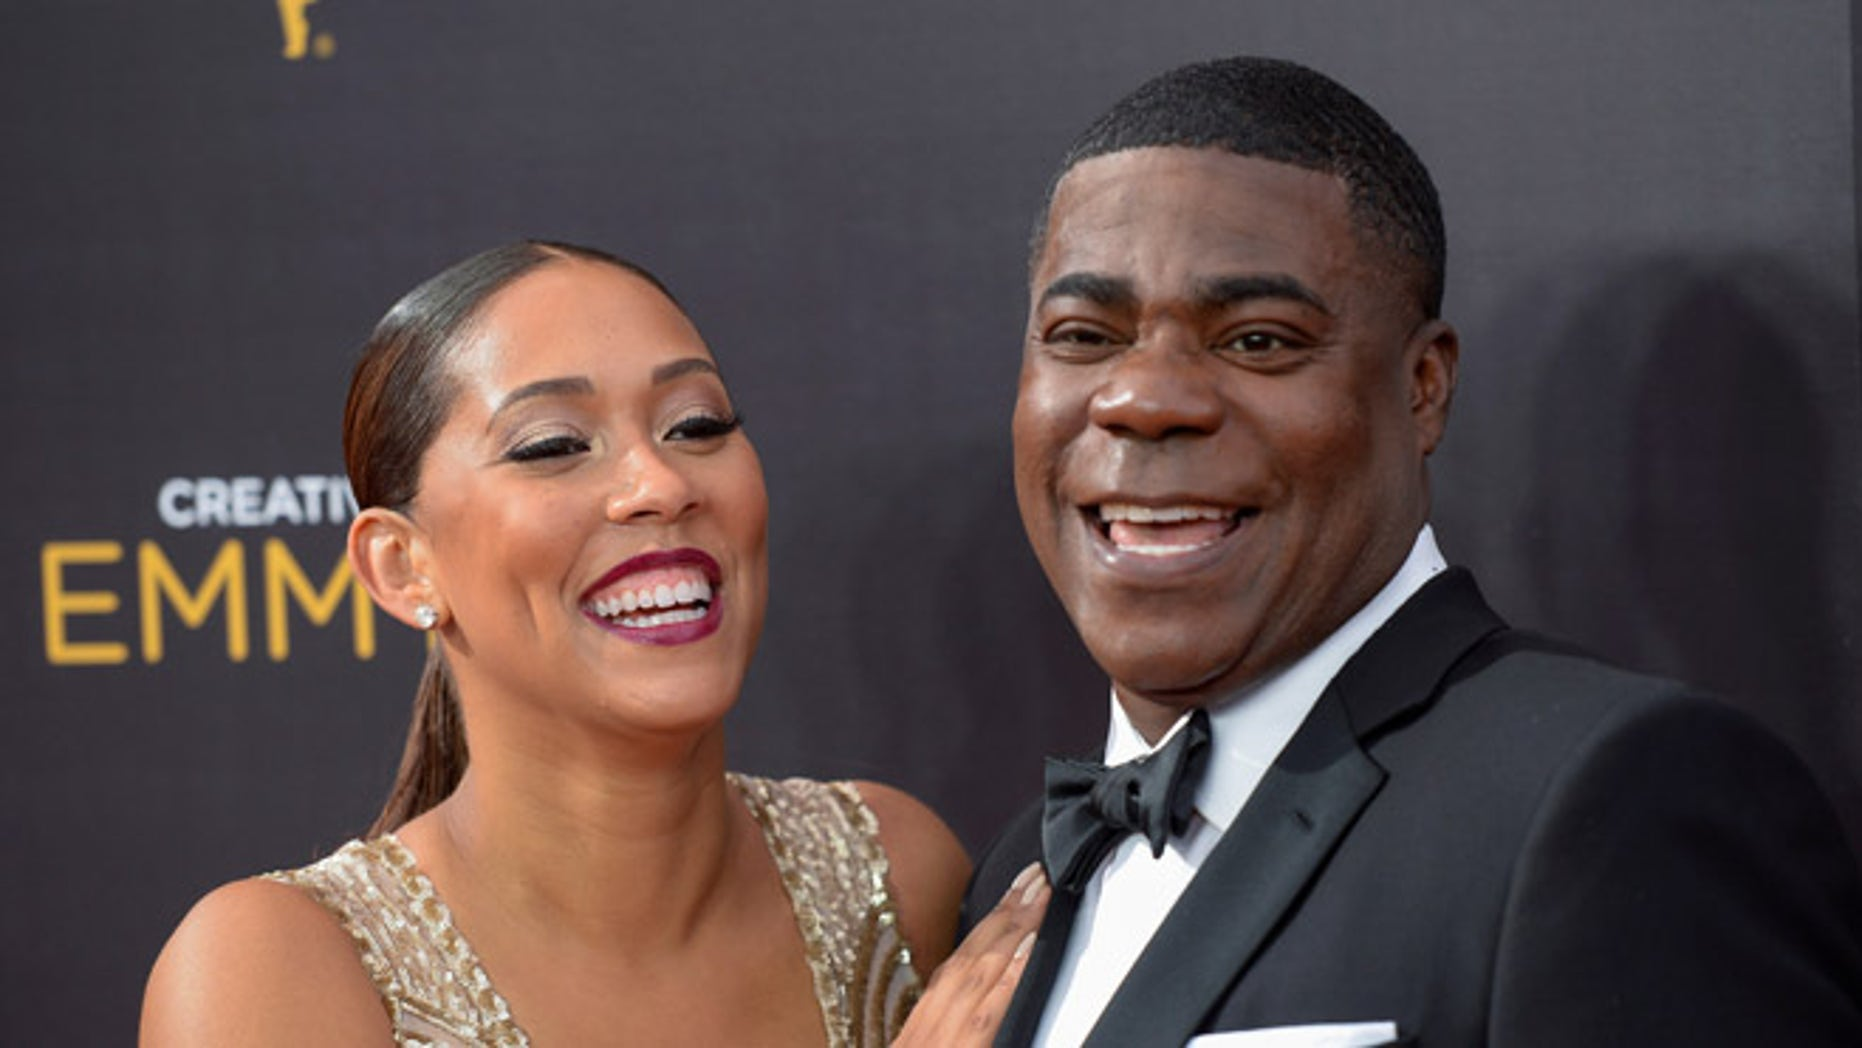 September 10, 2016. Tracy Morgan and his wife Megan Wollover at the Creative Arts Emmys.